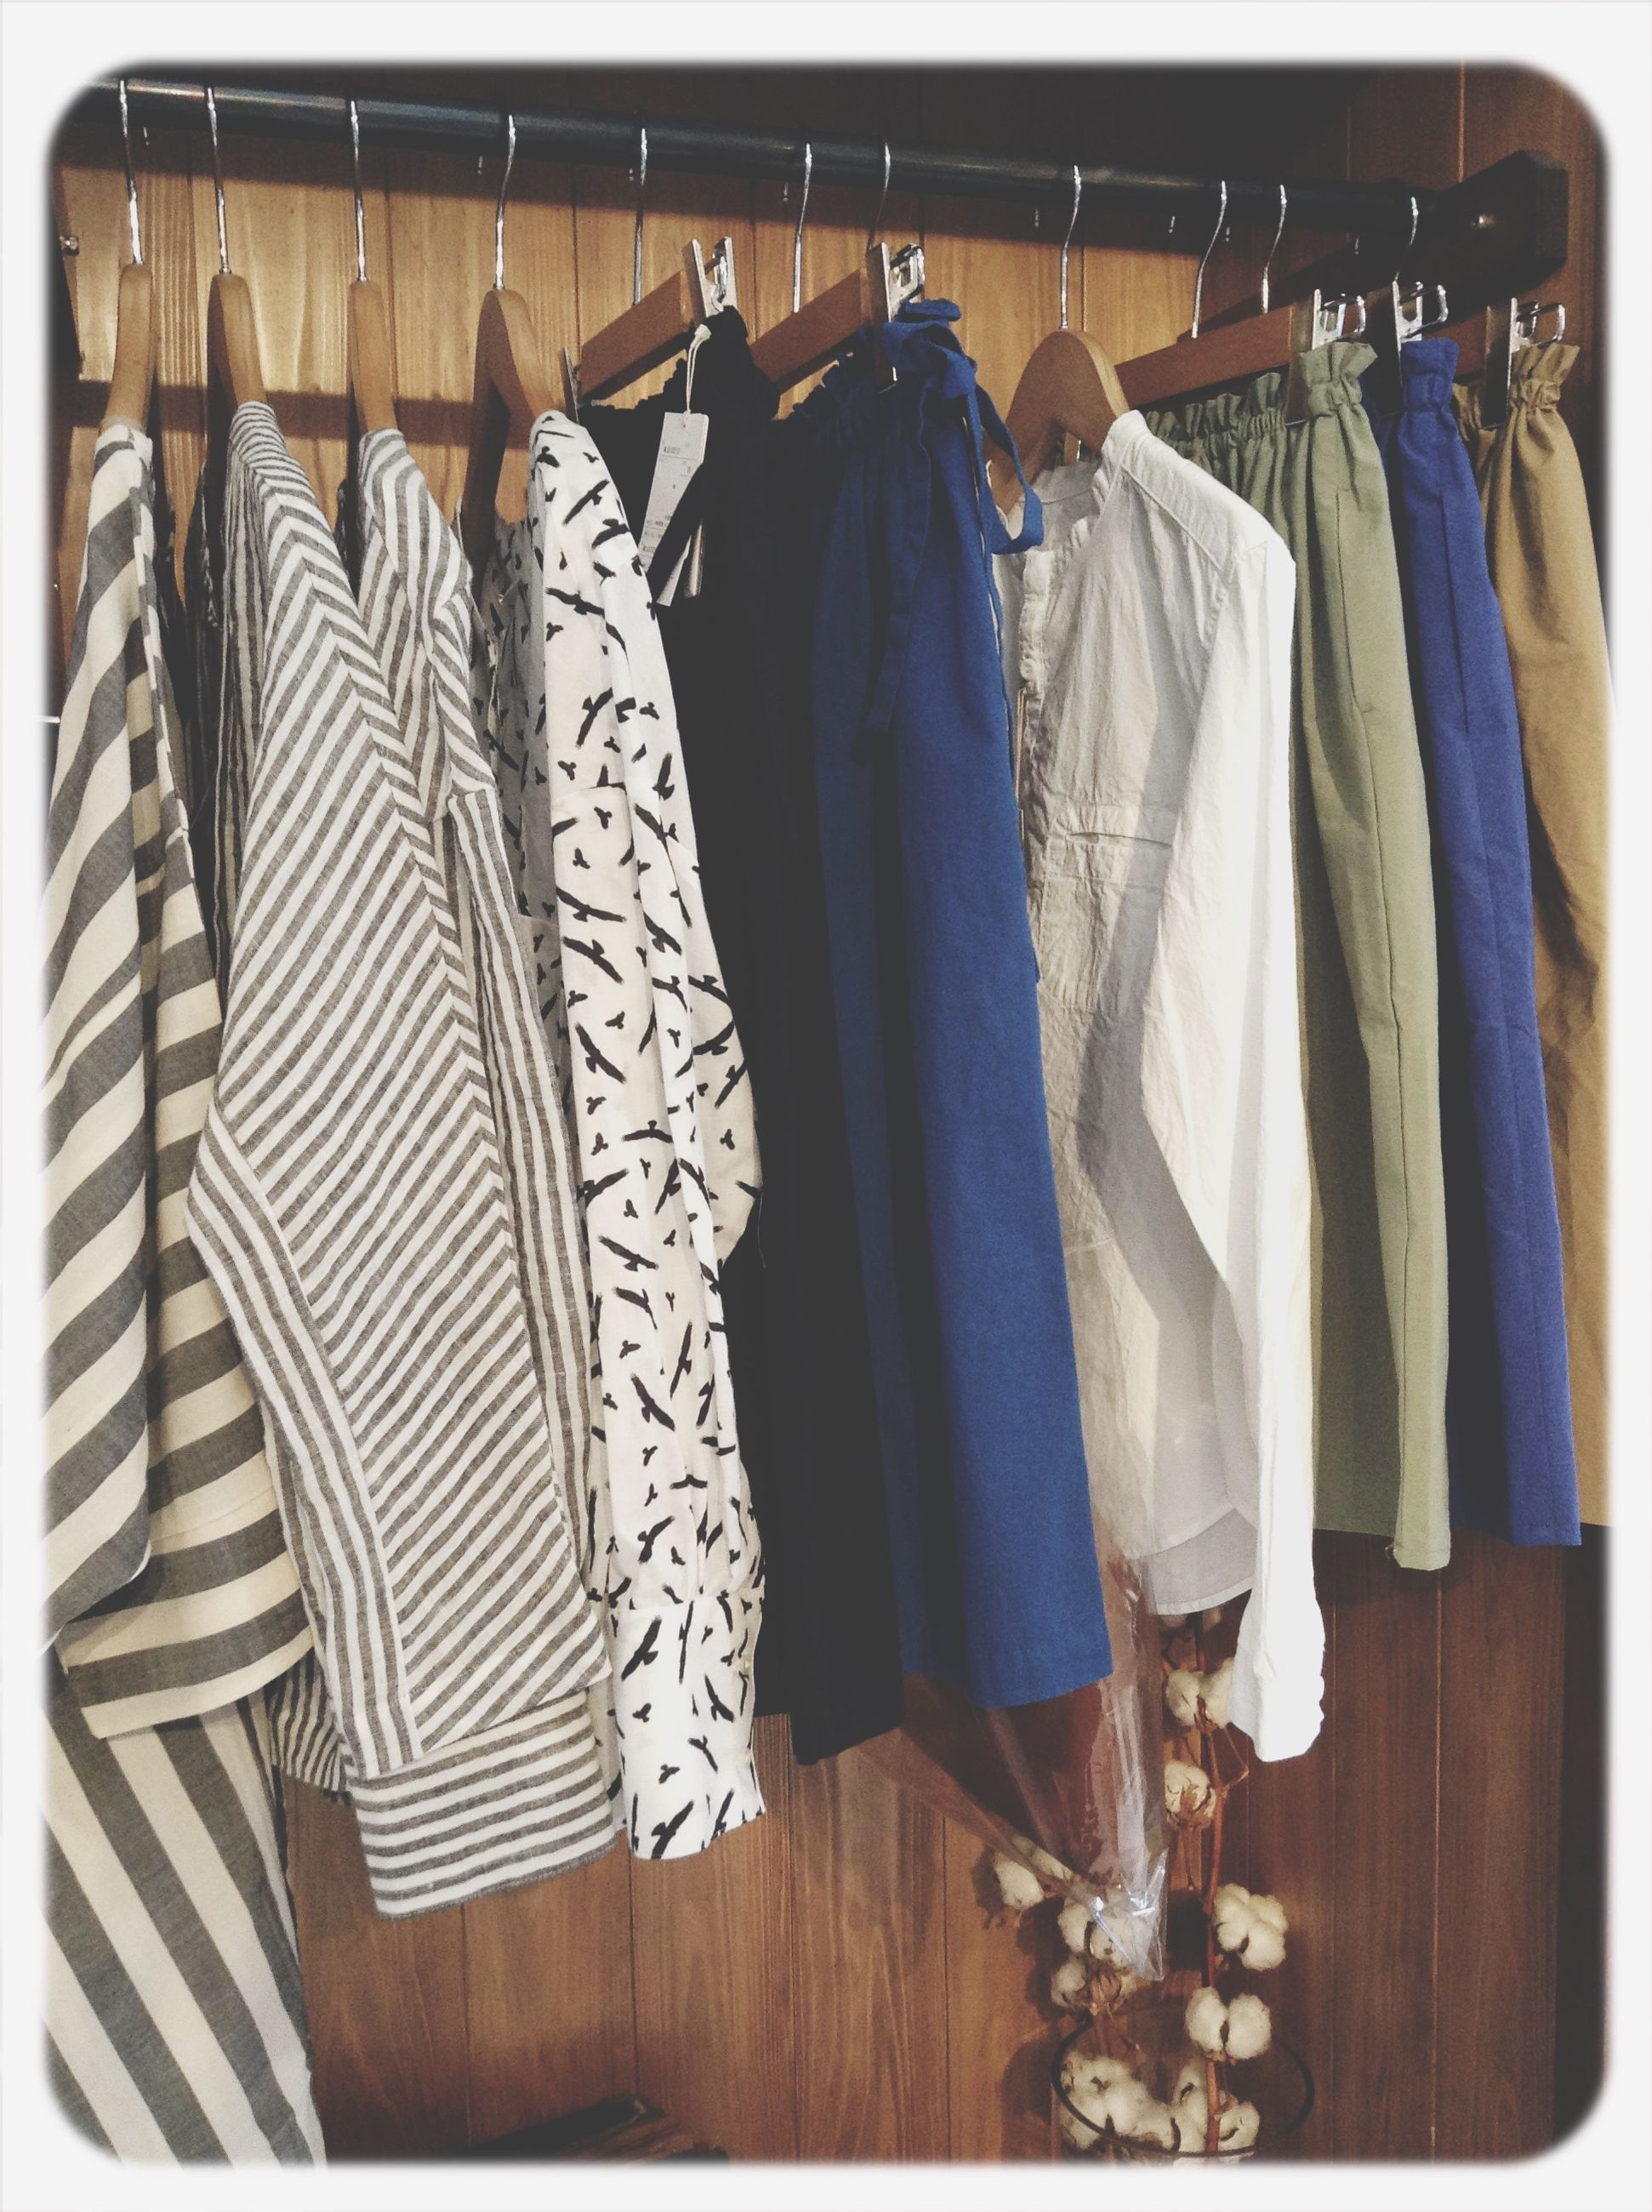 transfer print, auto post production filter, indoors, clothing, hanging, textile, in a row, side by side, standing, panoramic, fabric, men, rear view, curtain, day, laundry, drying, person, shopping